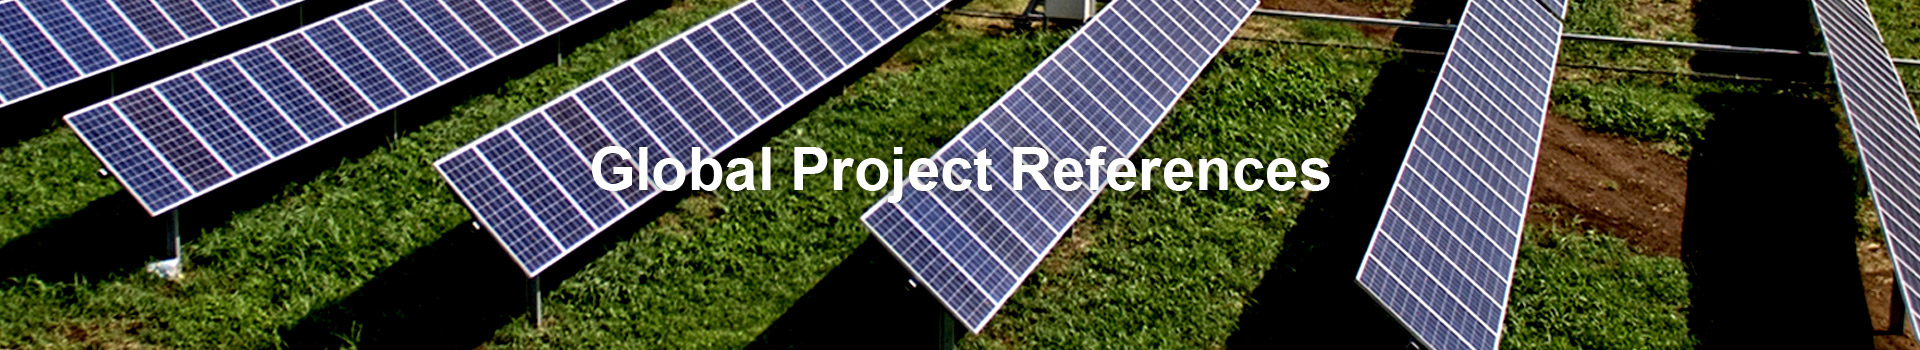 Global Project References